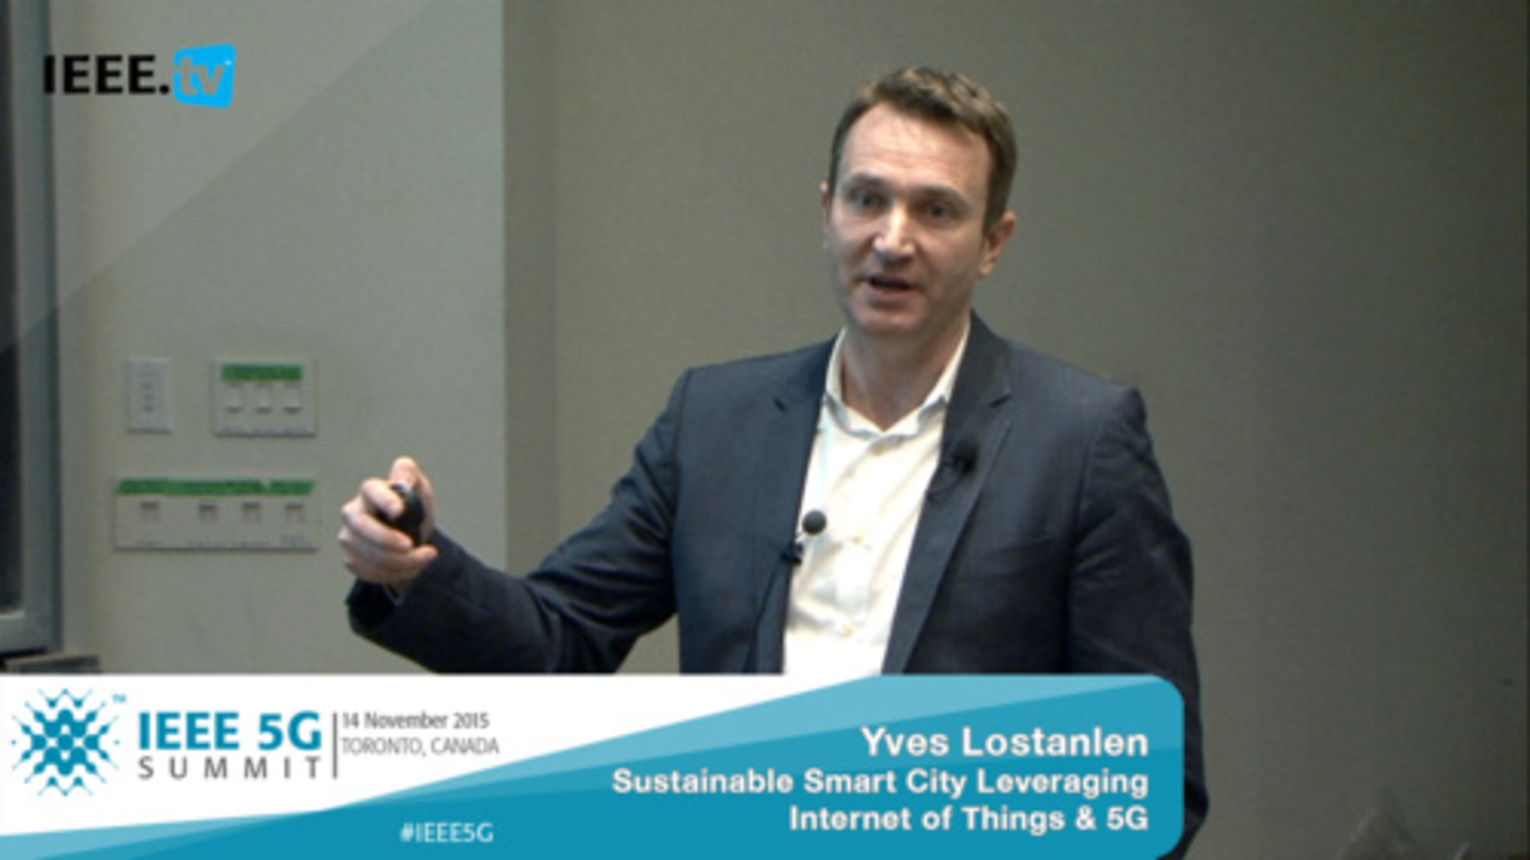 Toronto 5G Summit - 2015 - Yves Lostanlen - Sustainable Smart City: Leveraging Internet of Things and 5G